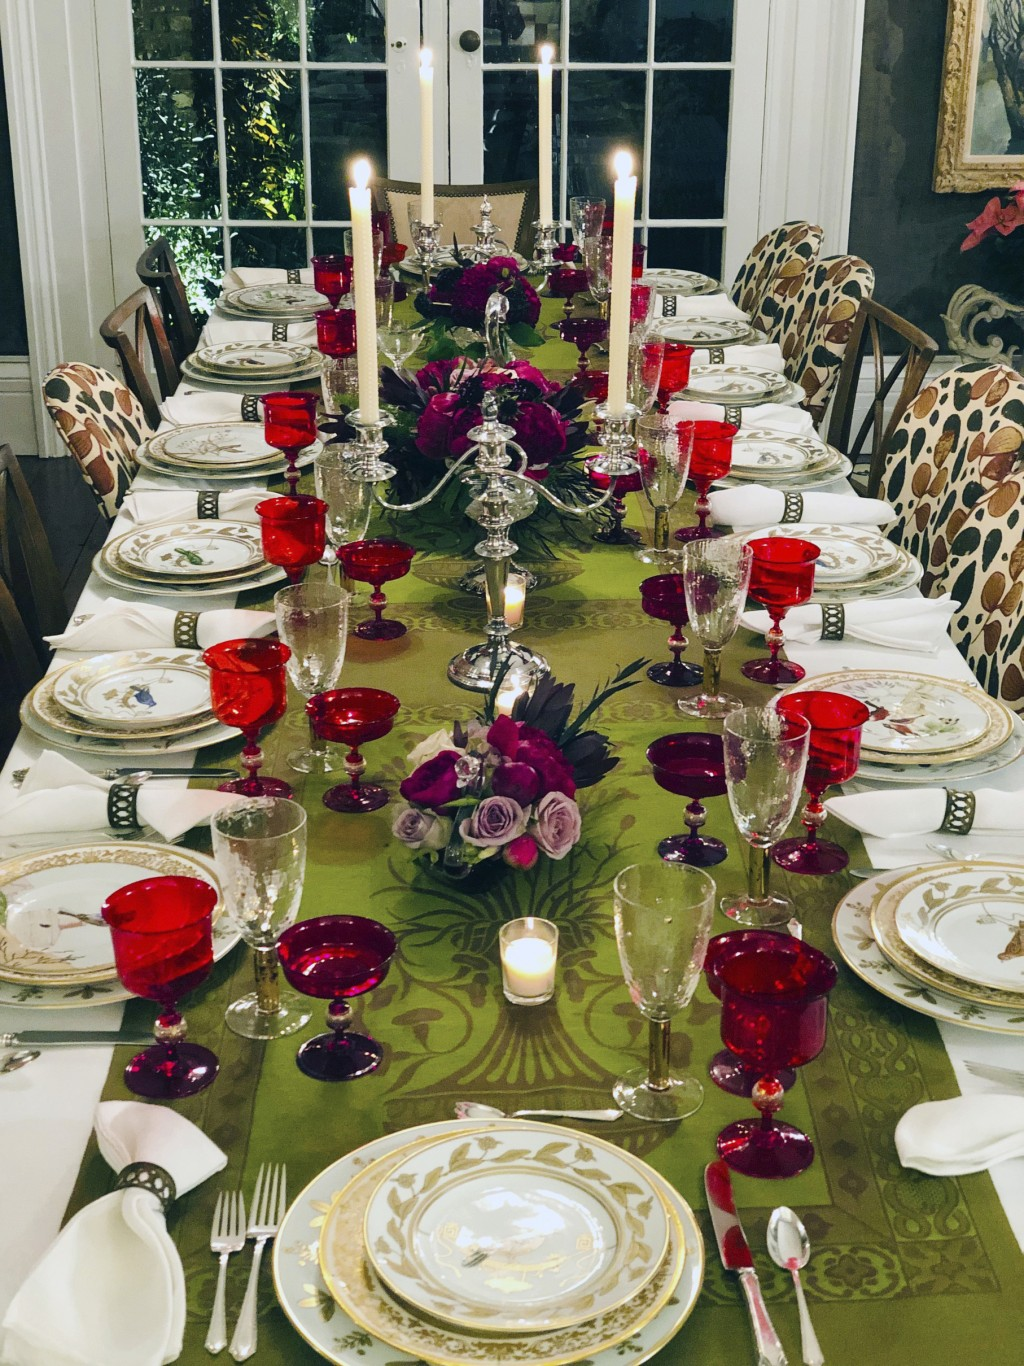 This photo provided by interior designer Elizabeth Stuart shows a table setting design by Stuart in a residence in Charleston, S.C. When setting a bea...